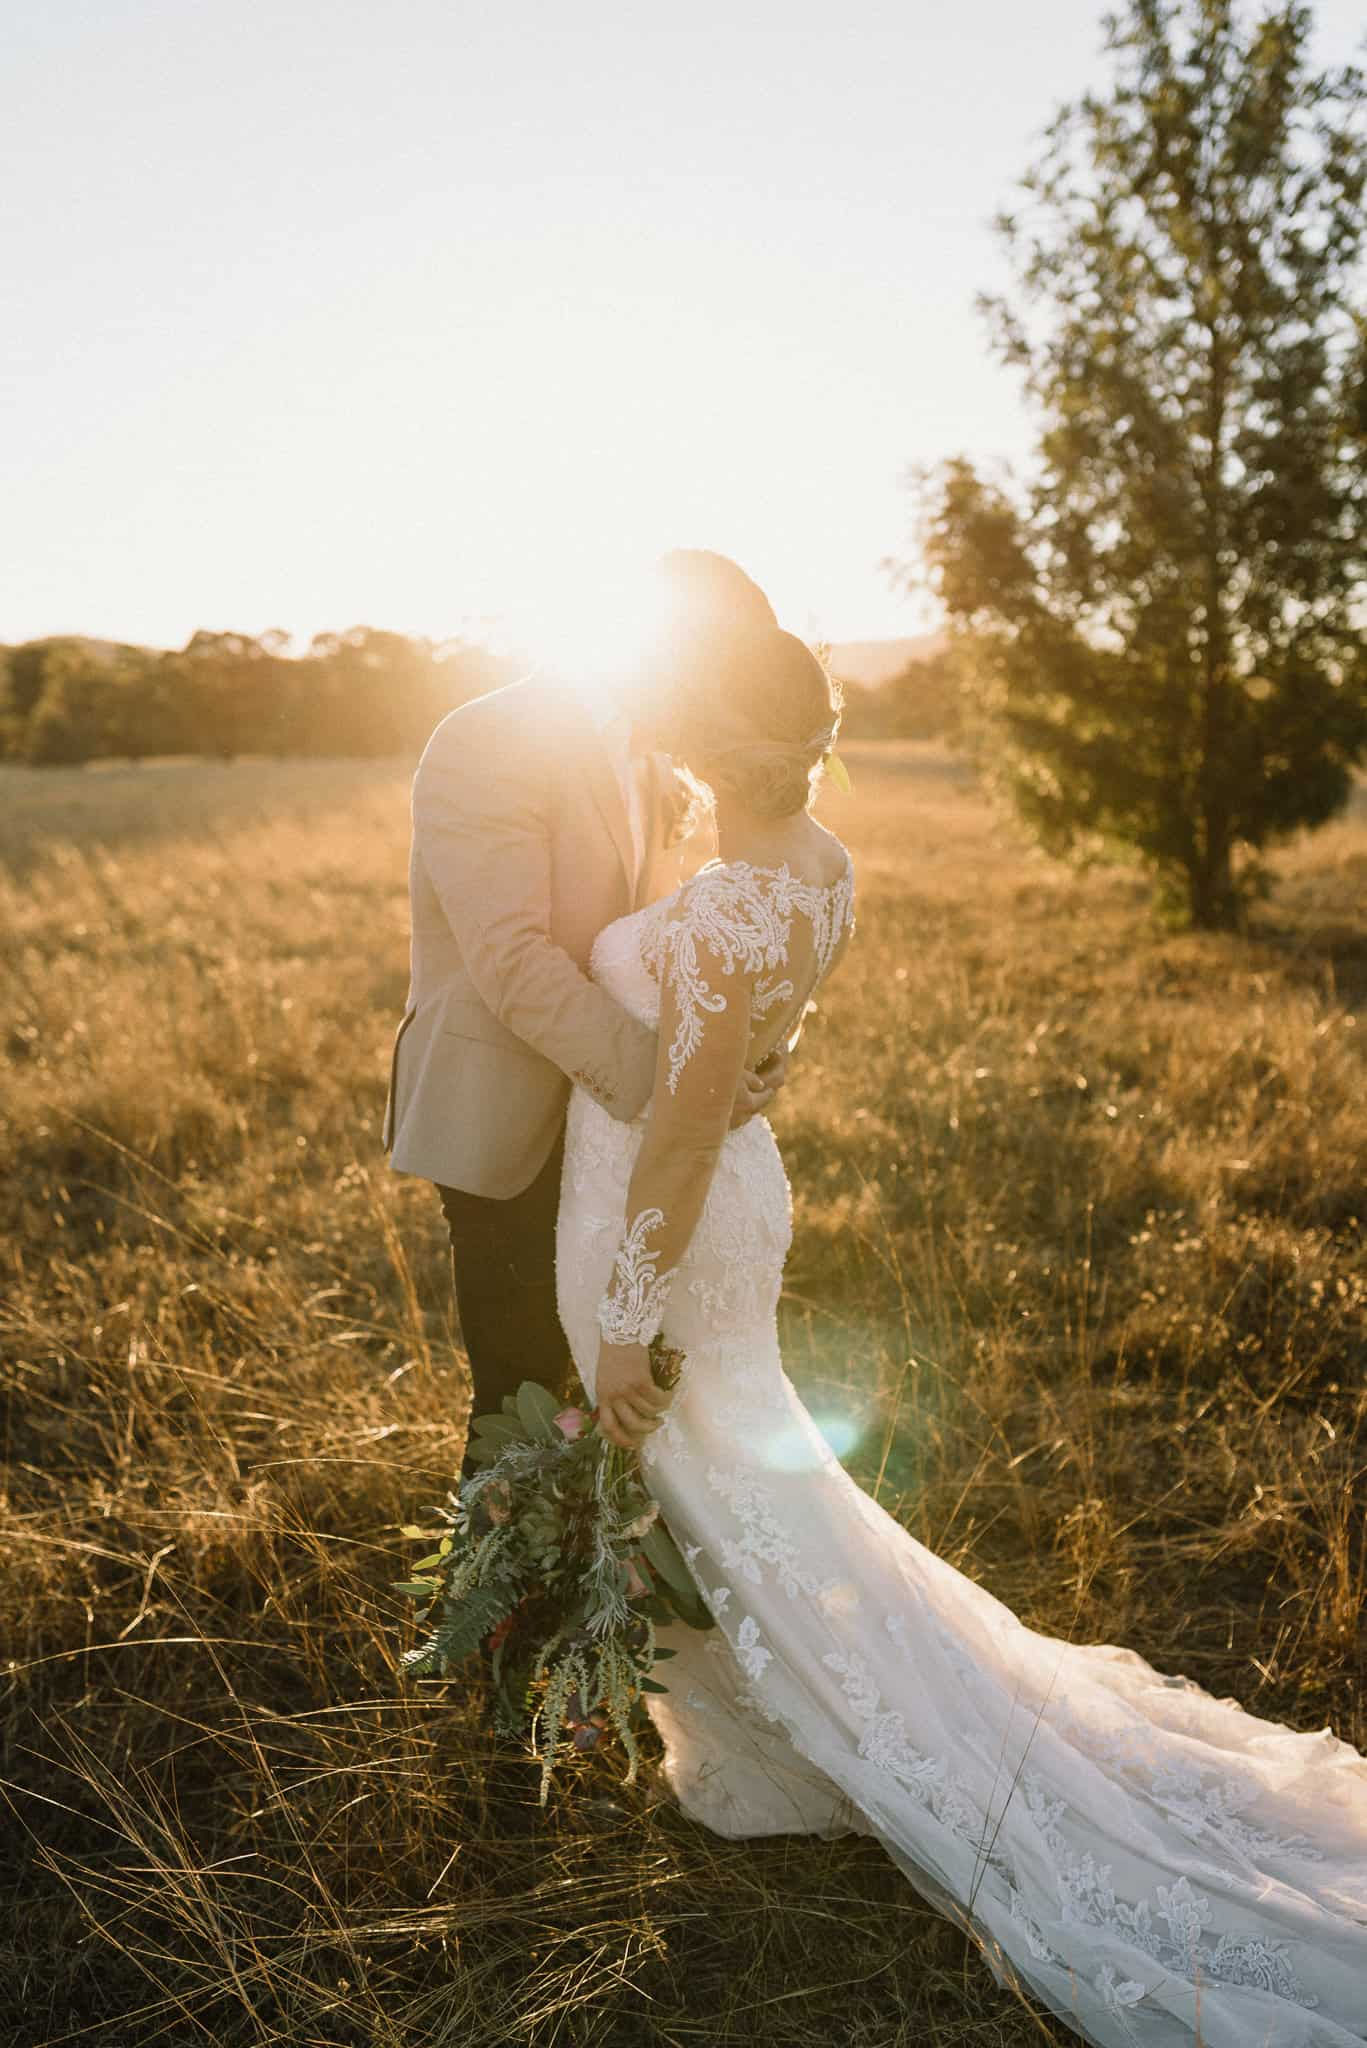 golden sun pours over bride and groom who stand in long grass field kissing